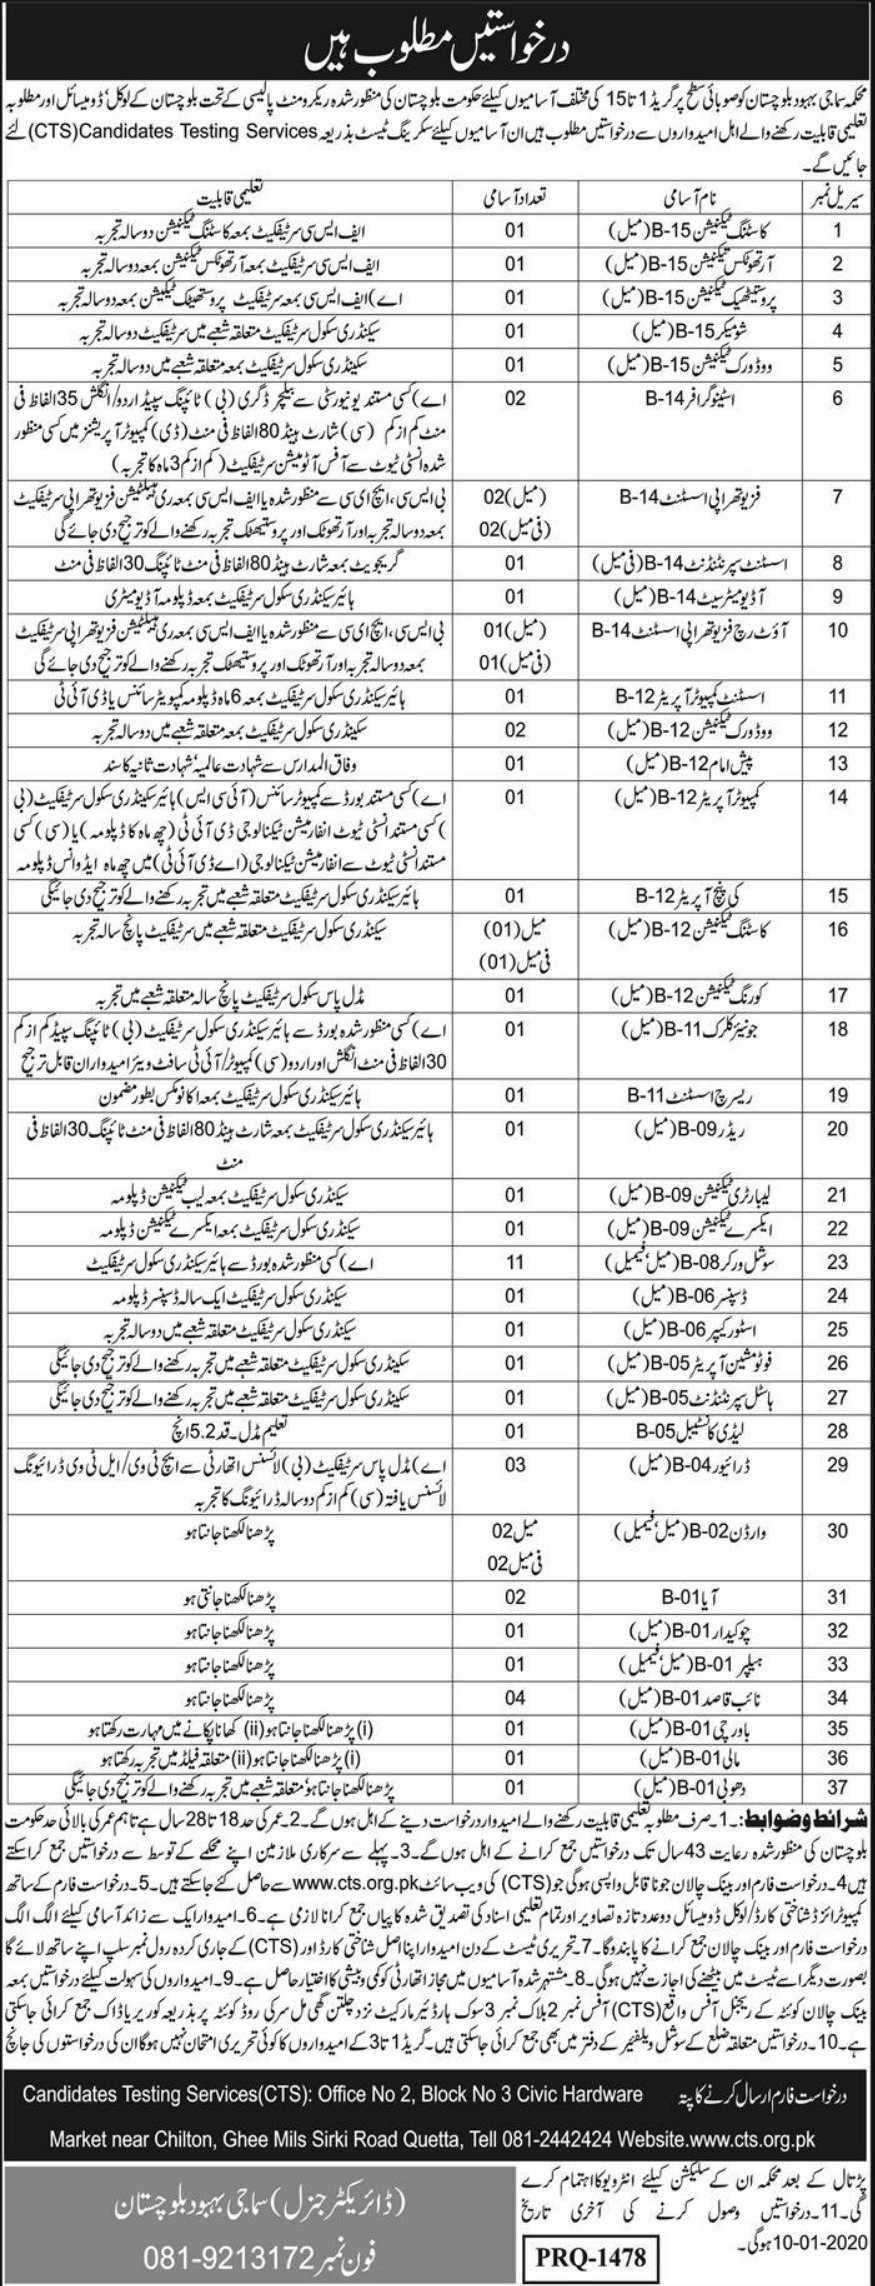 Social Welfare Department Balochistan Jobs 2019 Apply via CTS